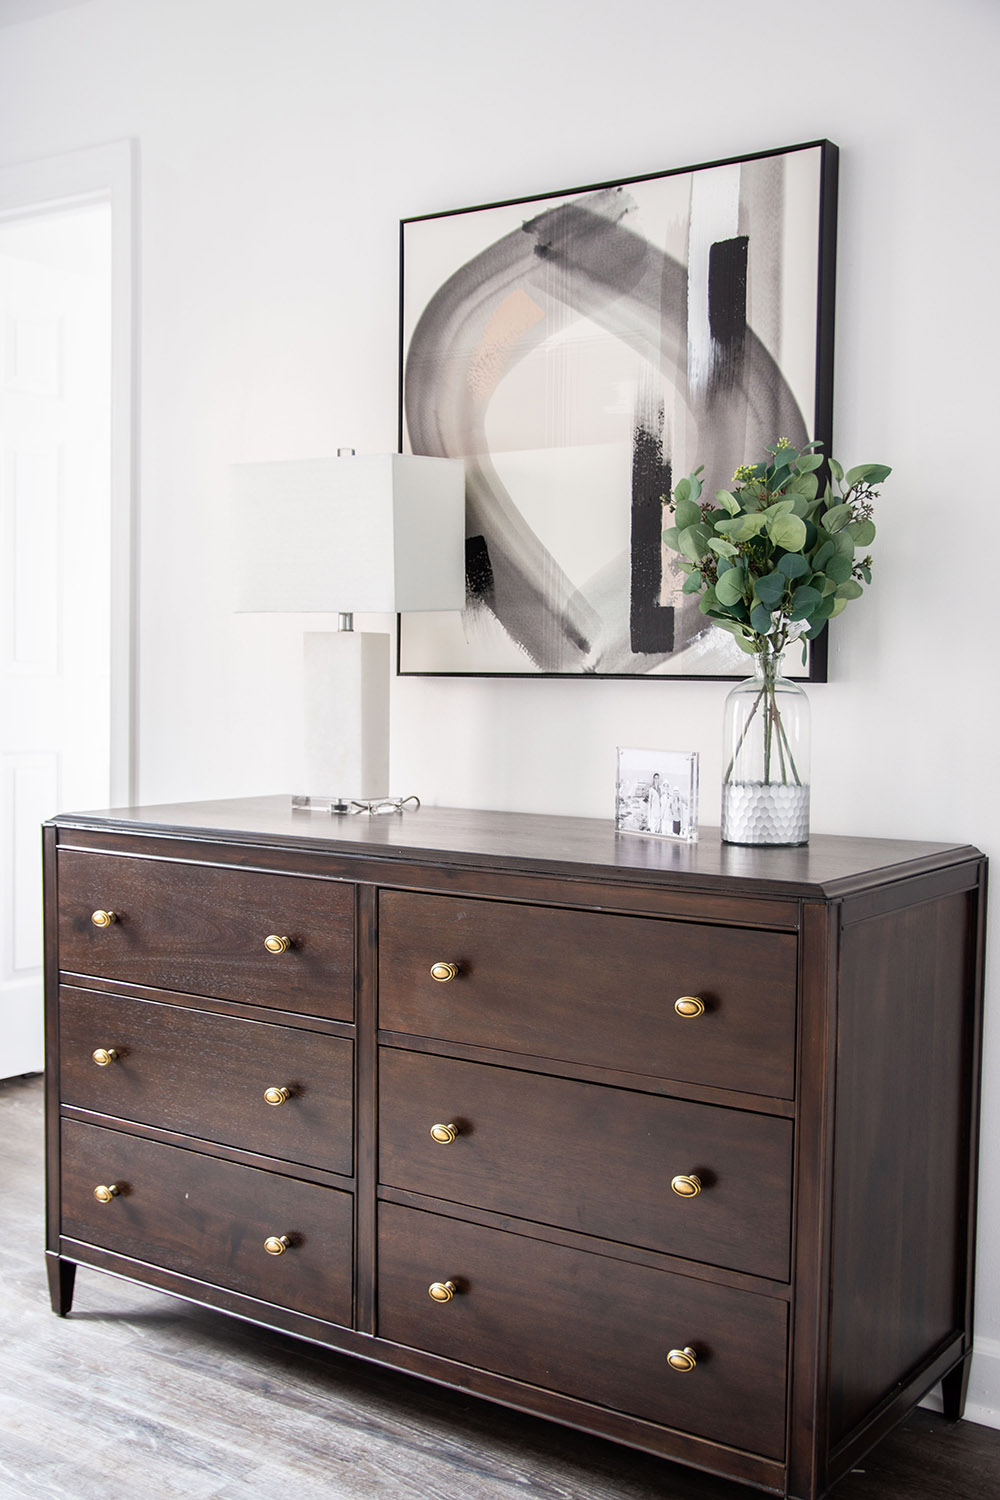 A bedroom wall featuring a wooden dresser and other decor items.